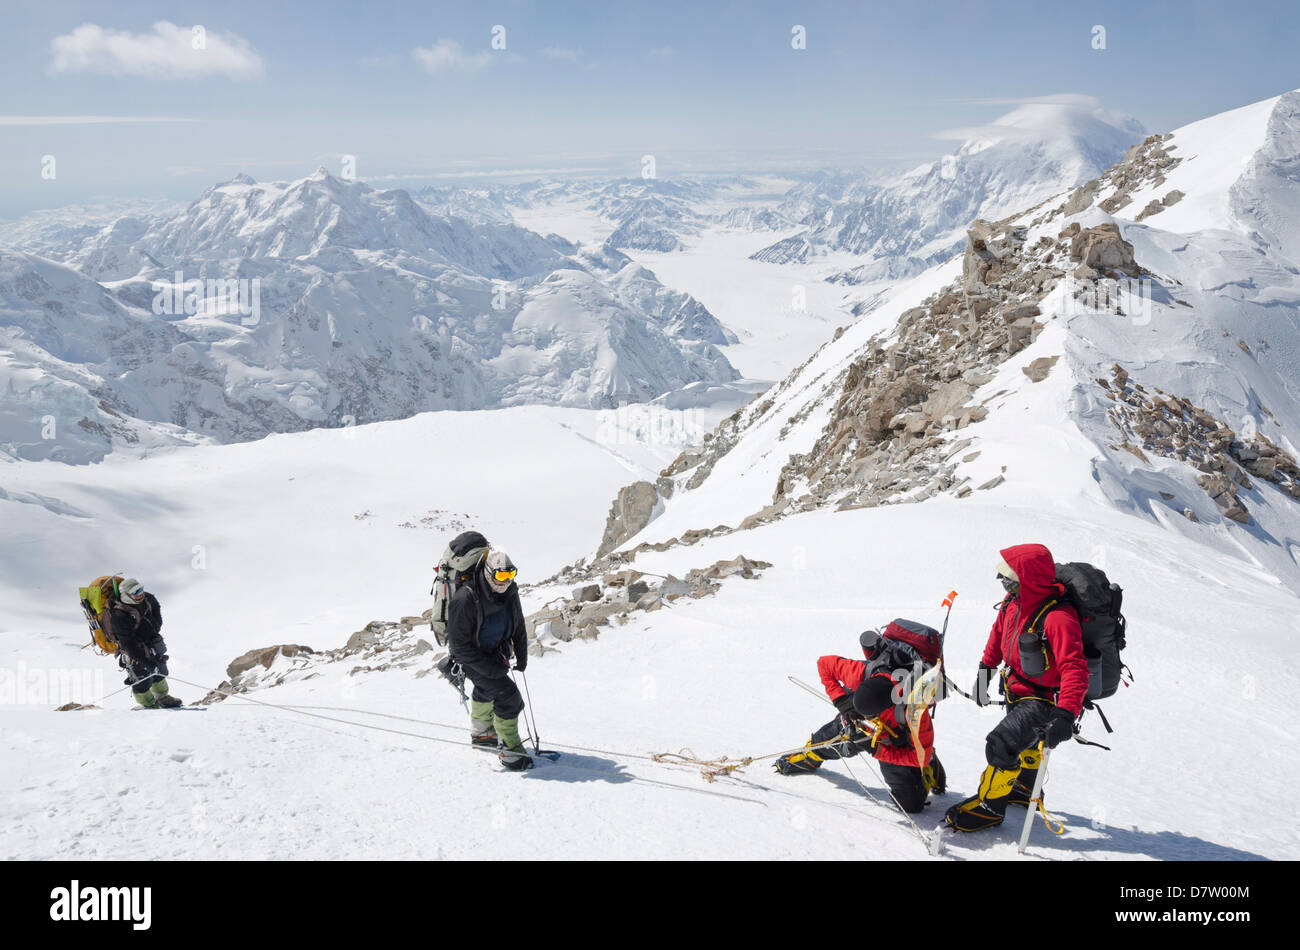 Klettern Expedition auf den Mount McKinley, 6194m, Denali National Park, Alaska, USA Stockbild